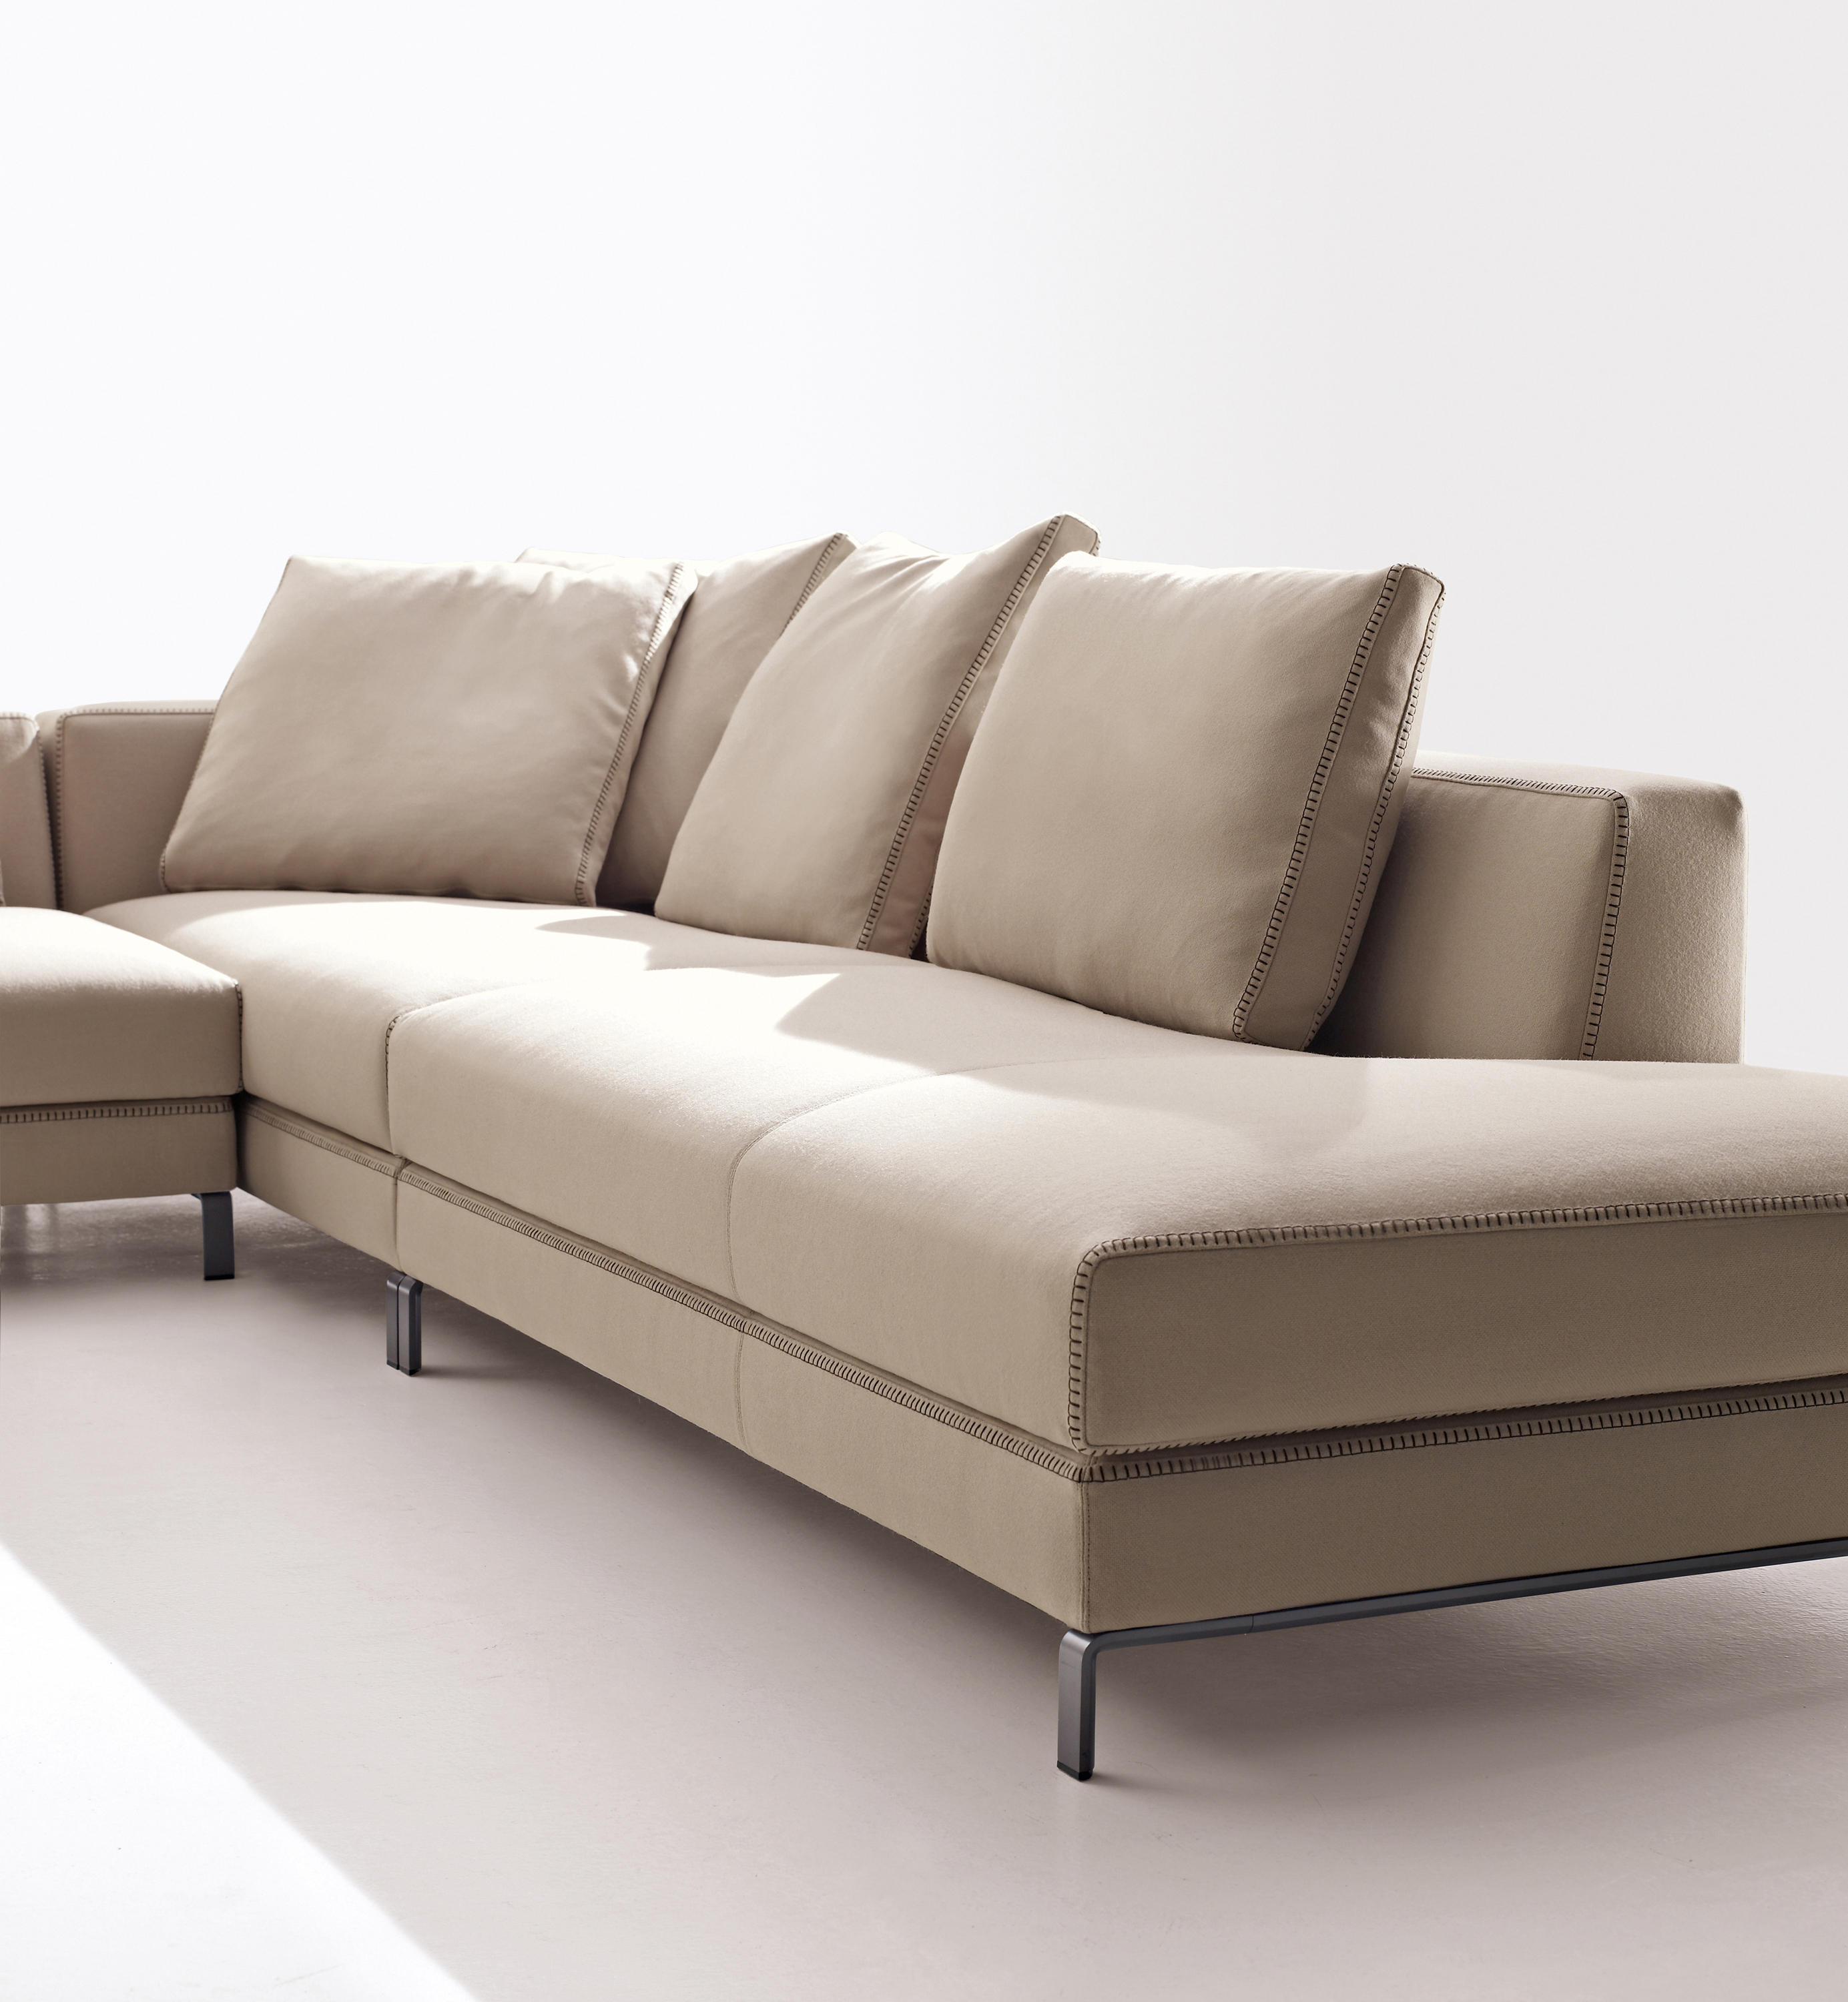 ray lounge sofas from b b italia architonic. Black Bedroom Furniture Sets. Home Design Ideas